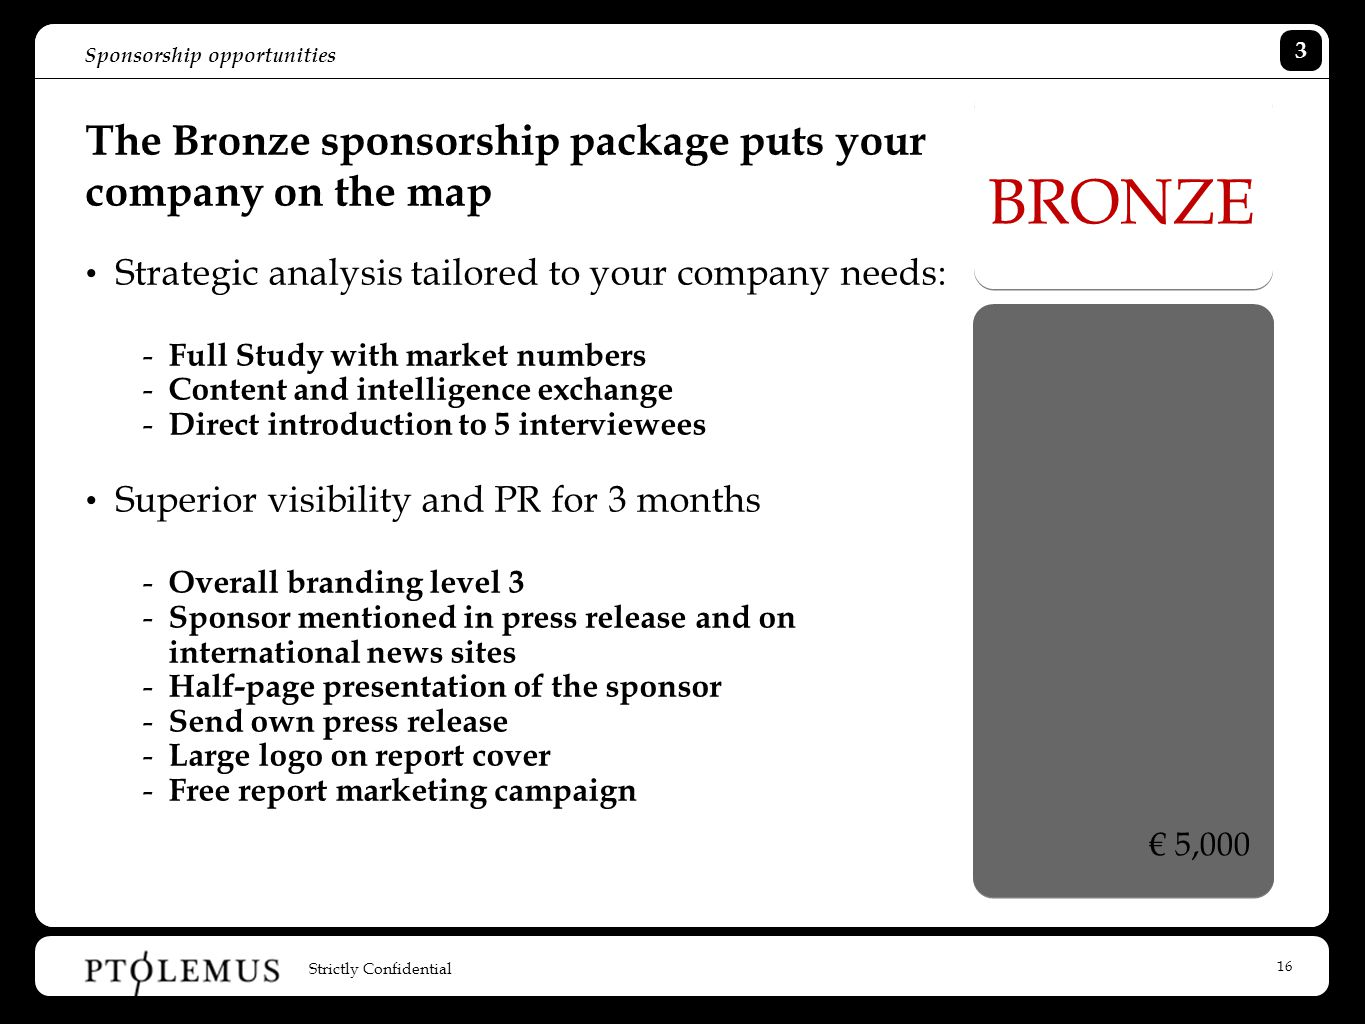 16 Sponsorship opportunities The Bronze sponsorship package puts your company on the map Strategic analysis tailored to your company needs: - Full Study with market numbers - Content and intelligence exchange - Direct introduction to 5 interviewees Superior visibility and PR for 3 months - Overall branding level 3 - Sponsor mentioned in press release and on international news sites - Half-page presentation of the sponsor - Send own press release - Large logo on report cover - Free report marketing campaign BRONZE € 5,000 Strictly Confidential 3